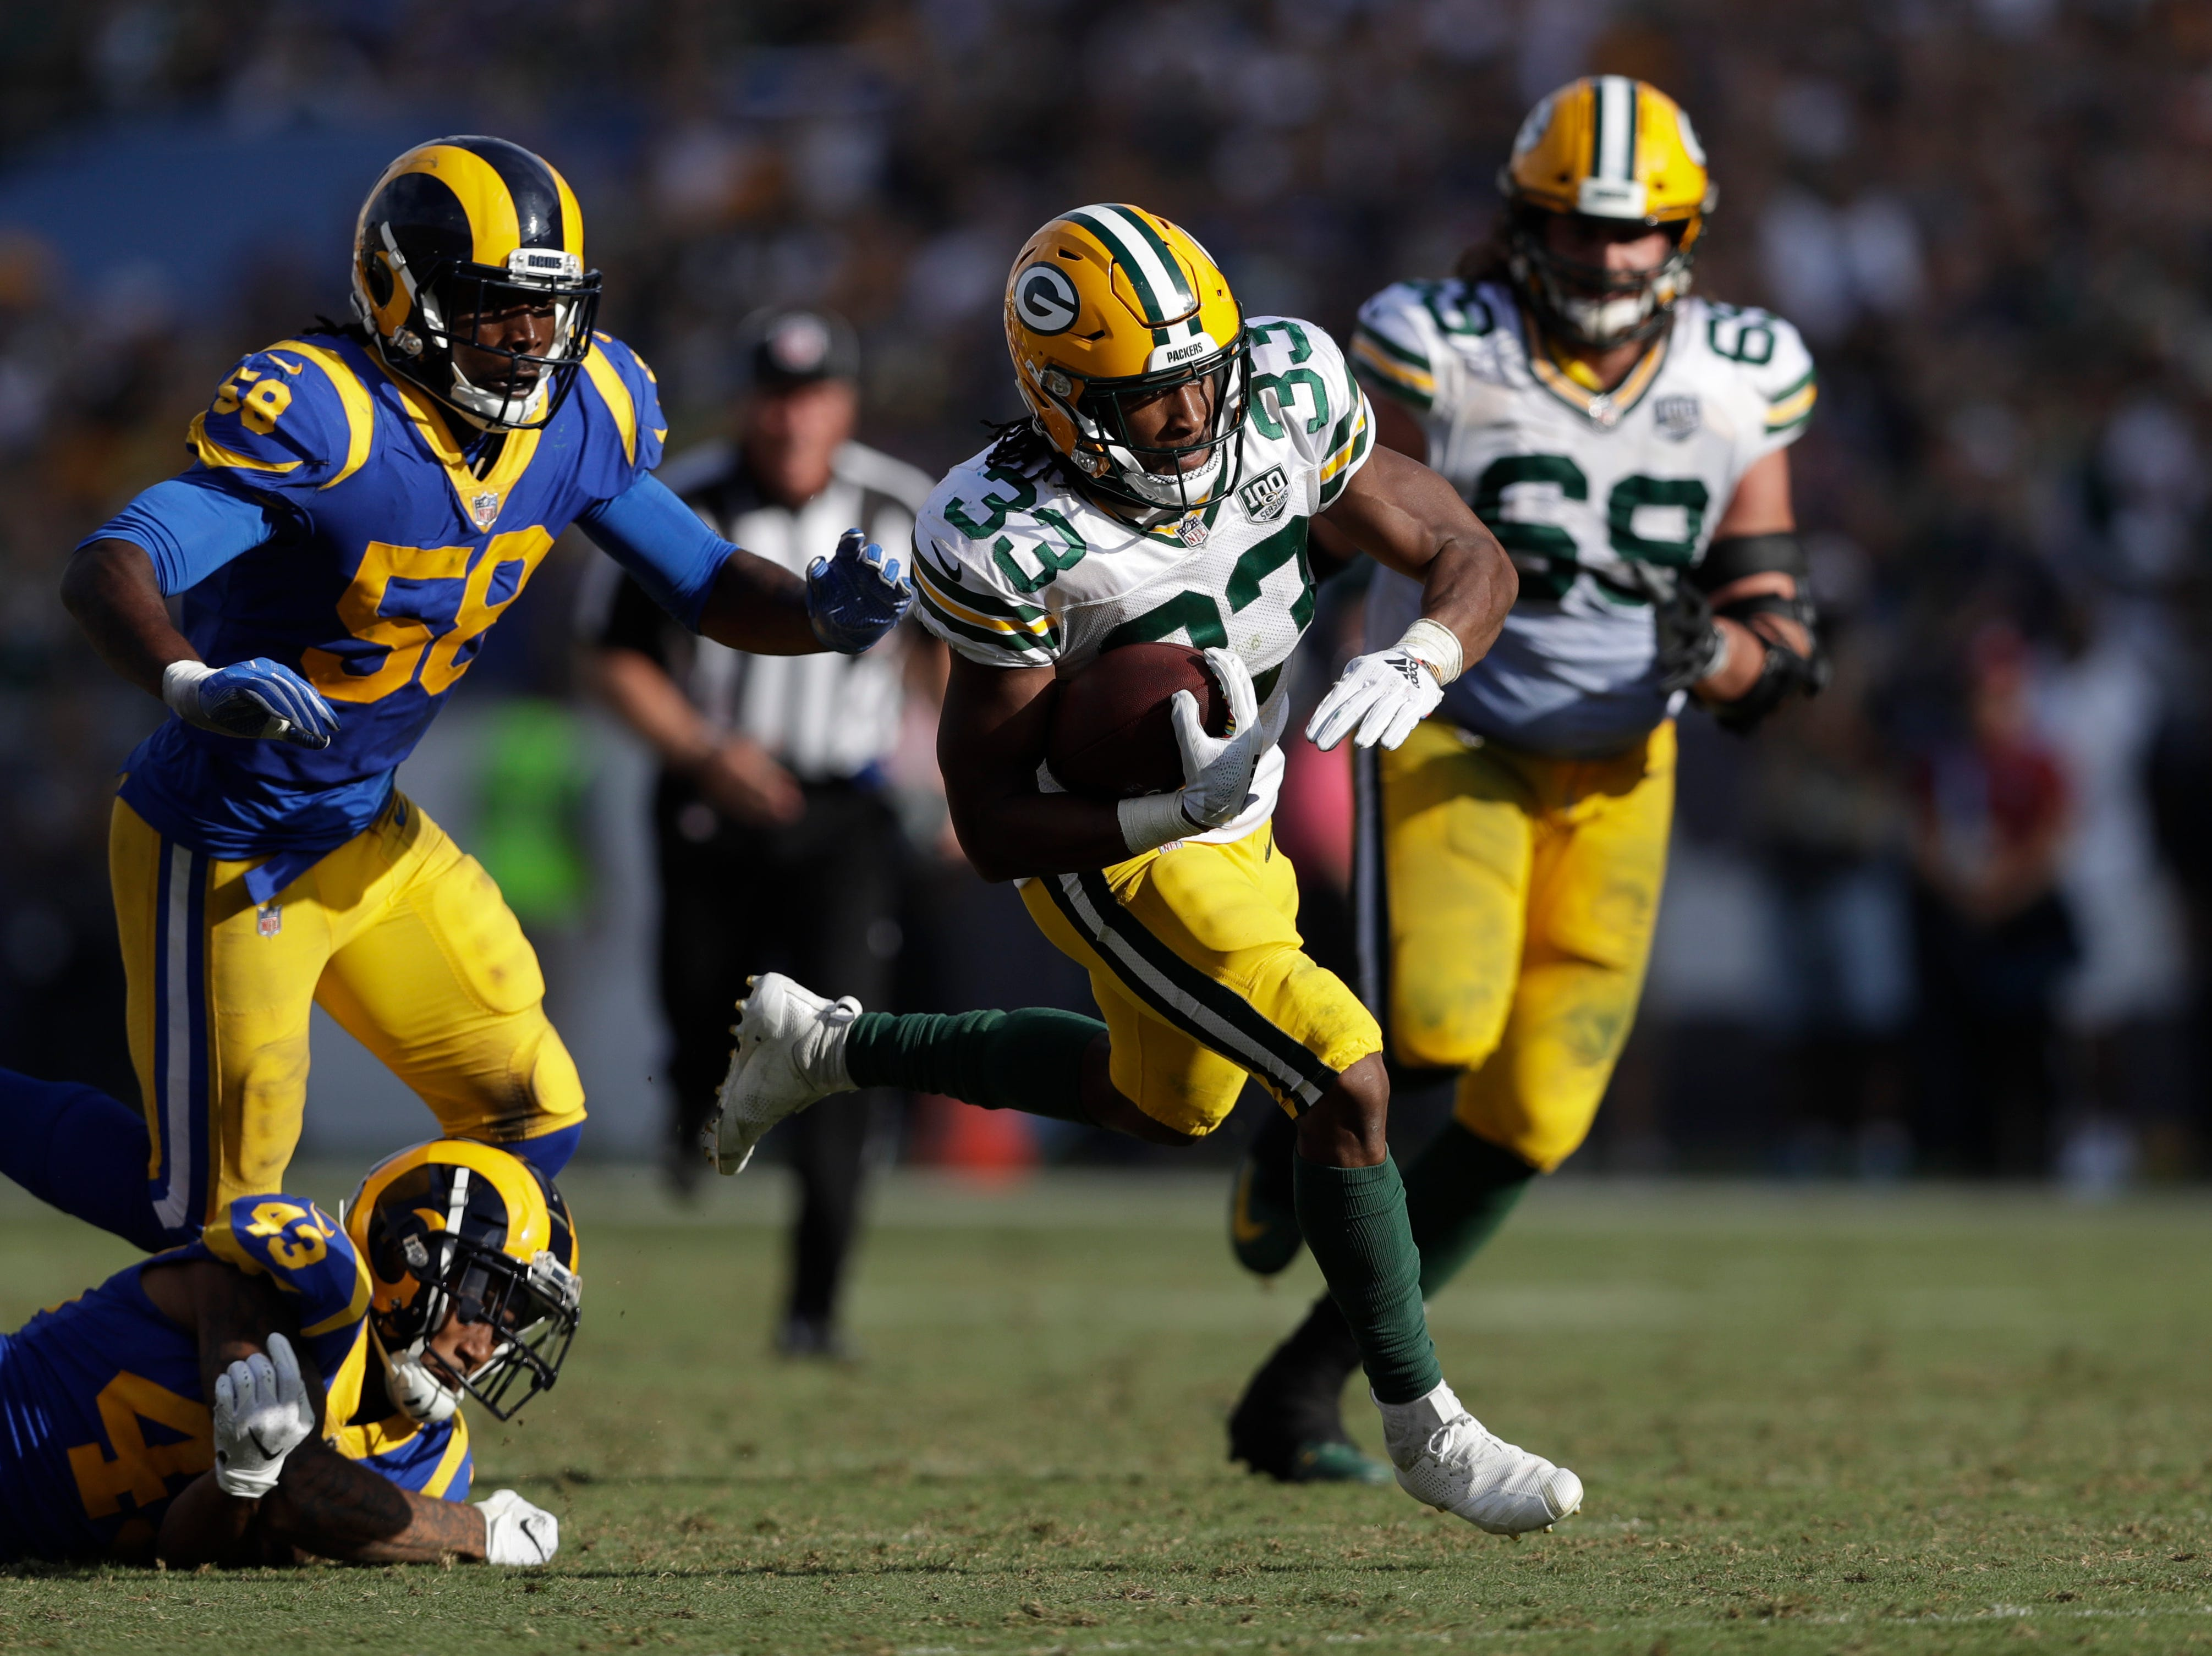 Green Bay Packers running back Aaron Jones gets past Los Angeles Rams strong safety John Johnson (43) on his way to scoring a touchdown during the second half of an NFL football game, Sunday, Oct. 28, 2018, in Los Angeles. (AP Photo/Marcio Jose Sanchez)